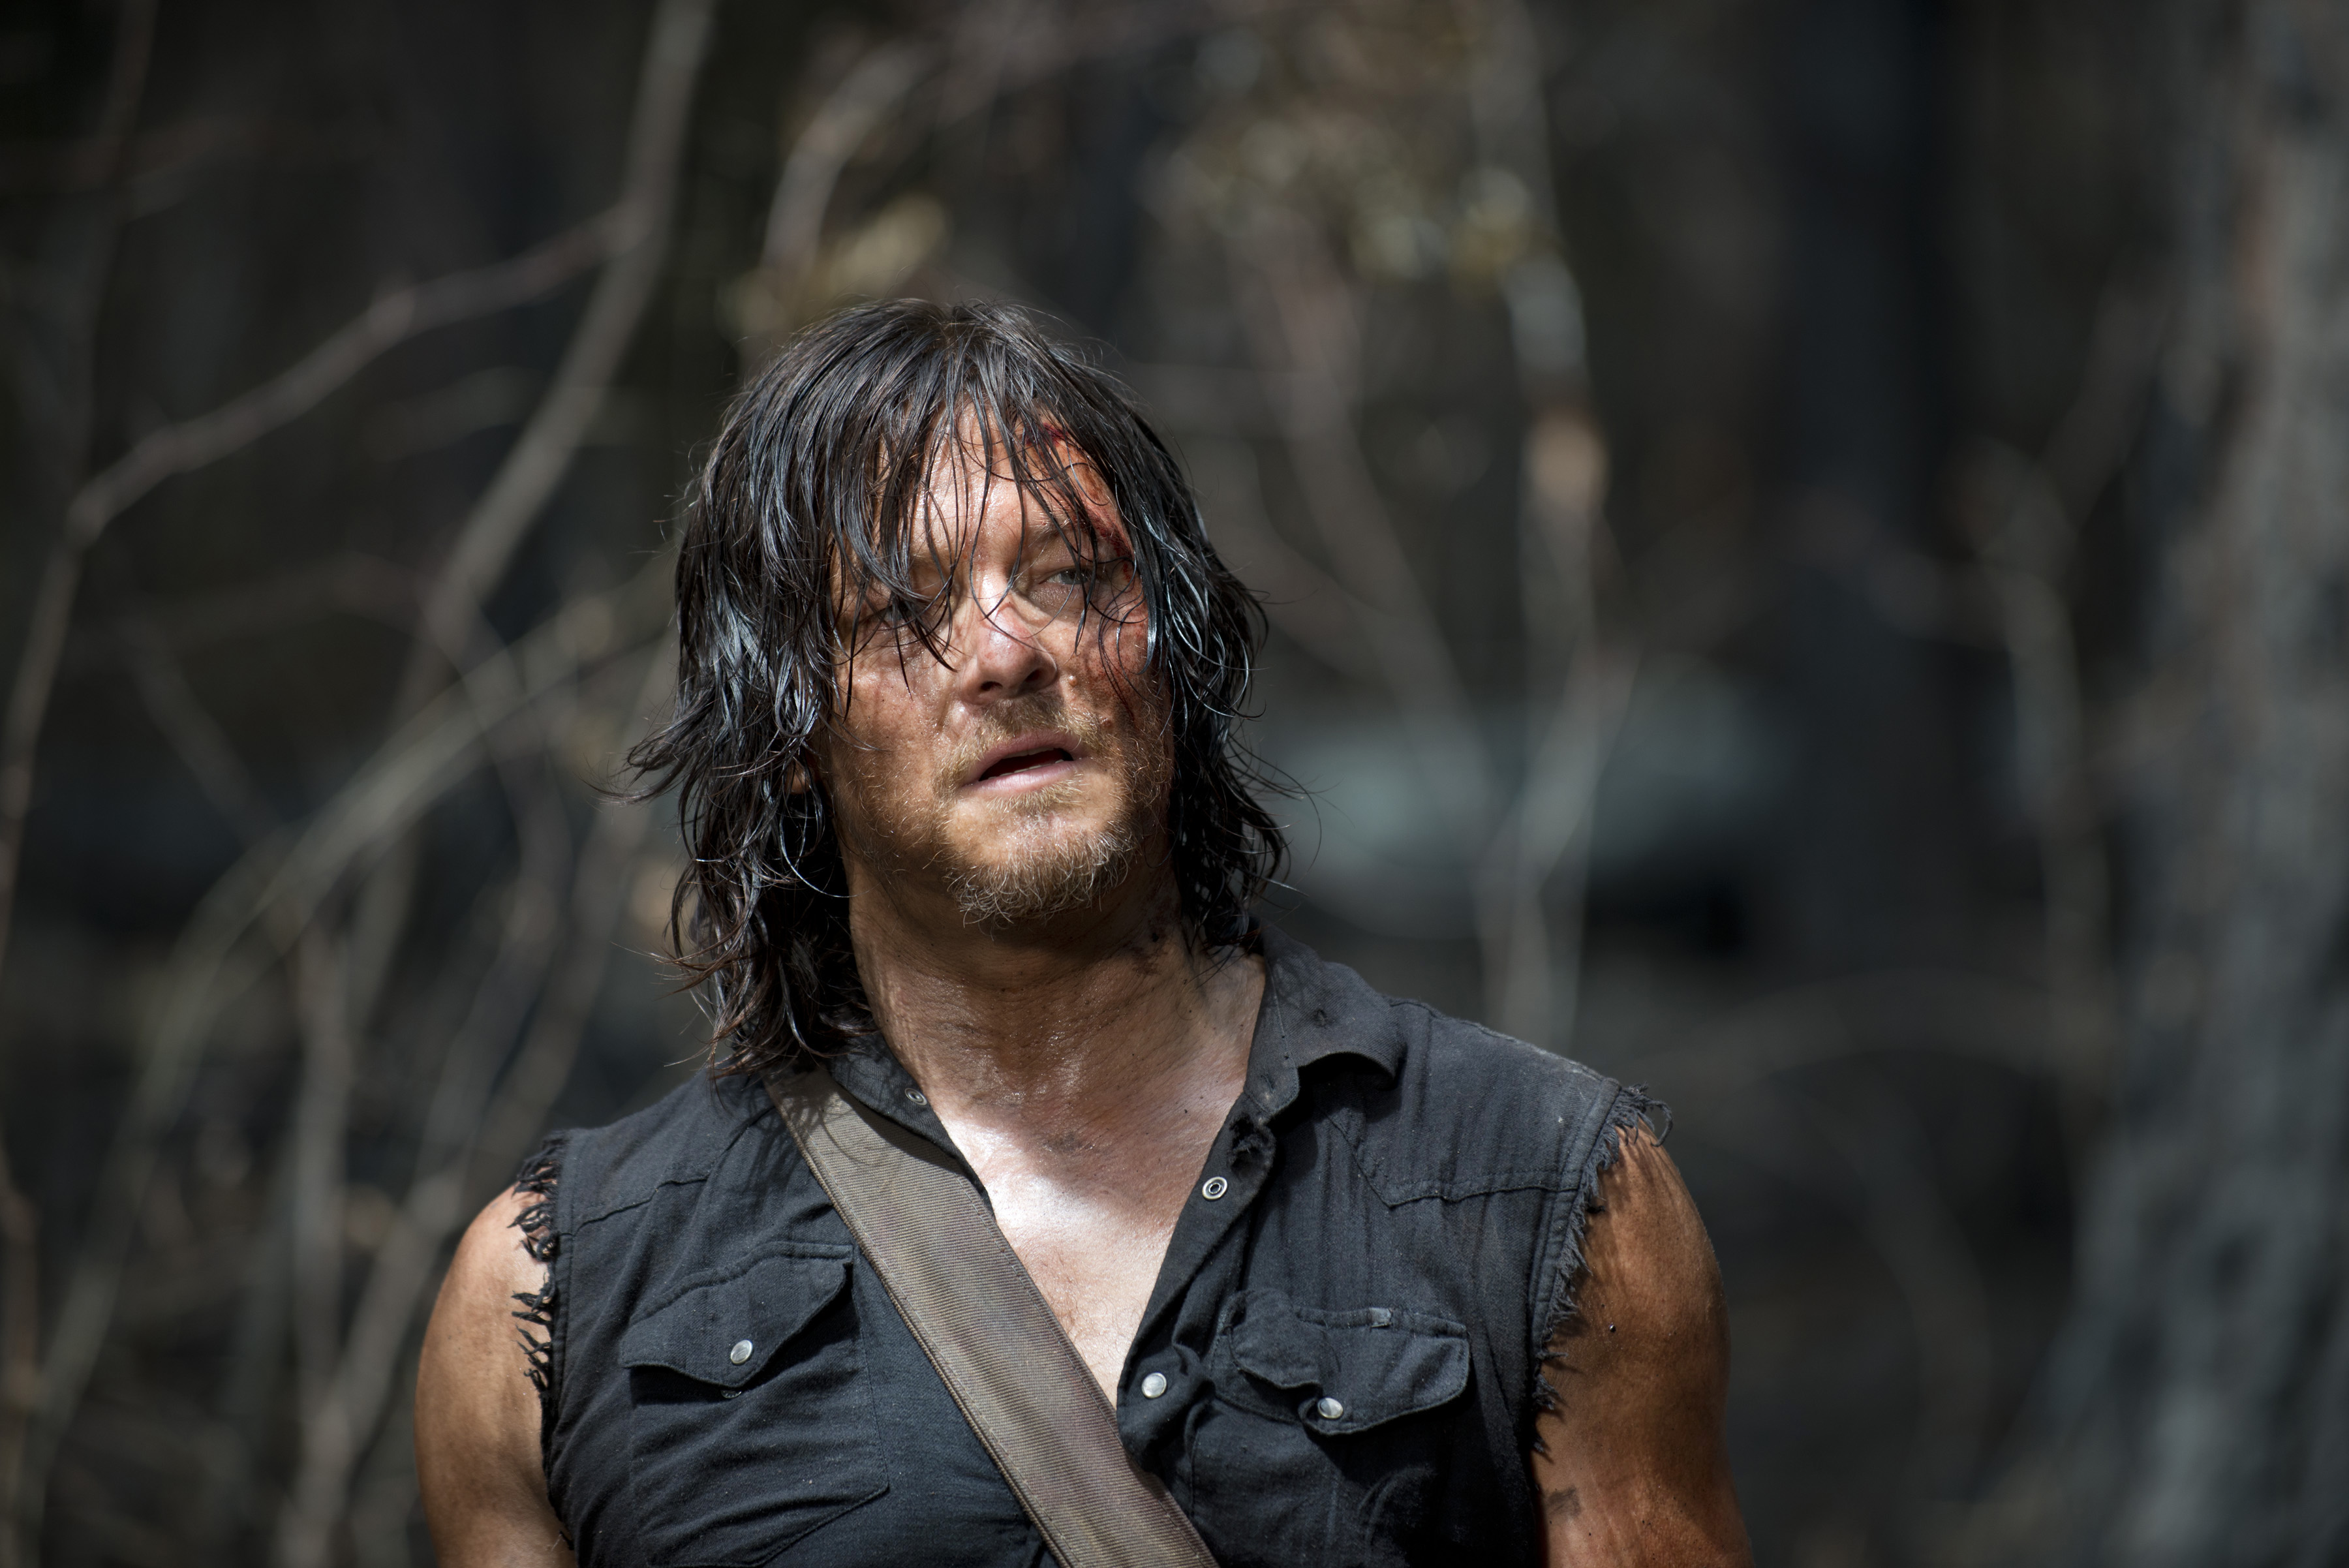 Norman reedus as daryl dixon the walking dead season 6 episode 6 norman reedus as daryl dixon the walking dead voltagebd Gallery